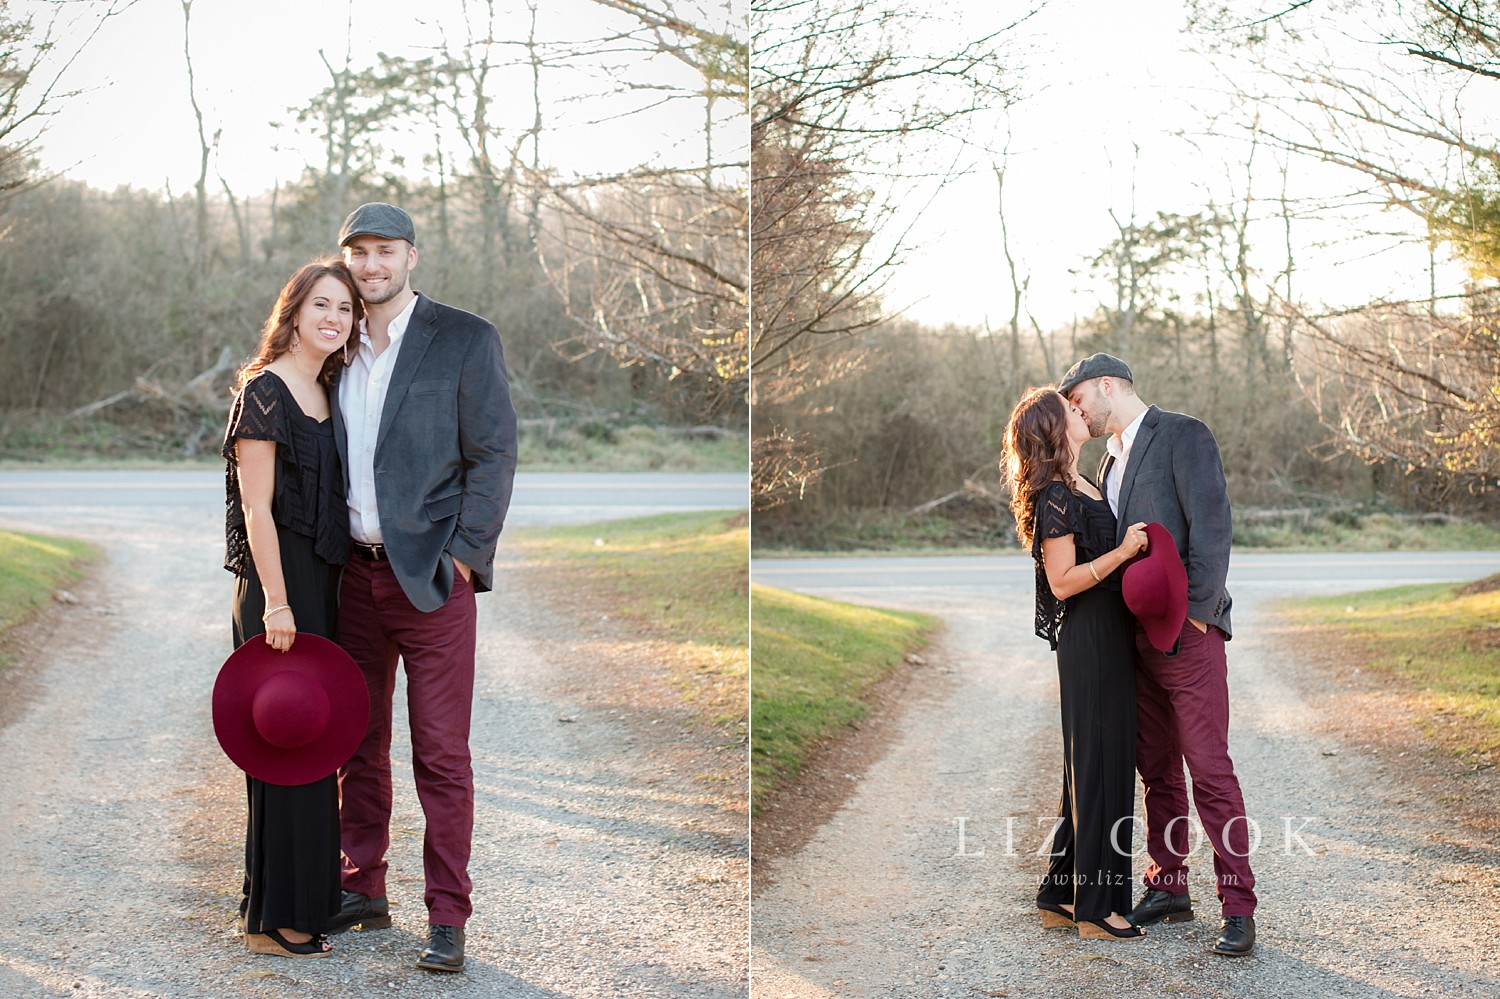 glencliff_manor_engagement_liz_cook_photography__0020.jpg